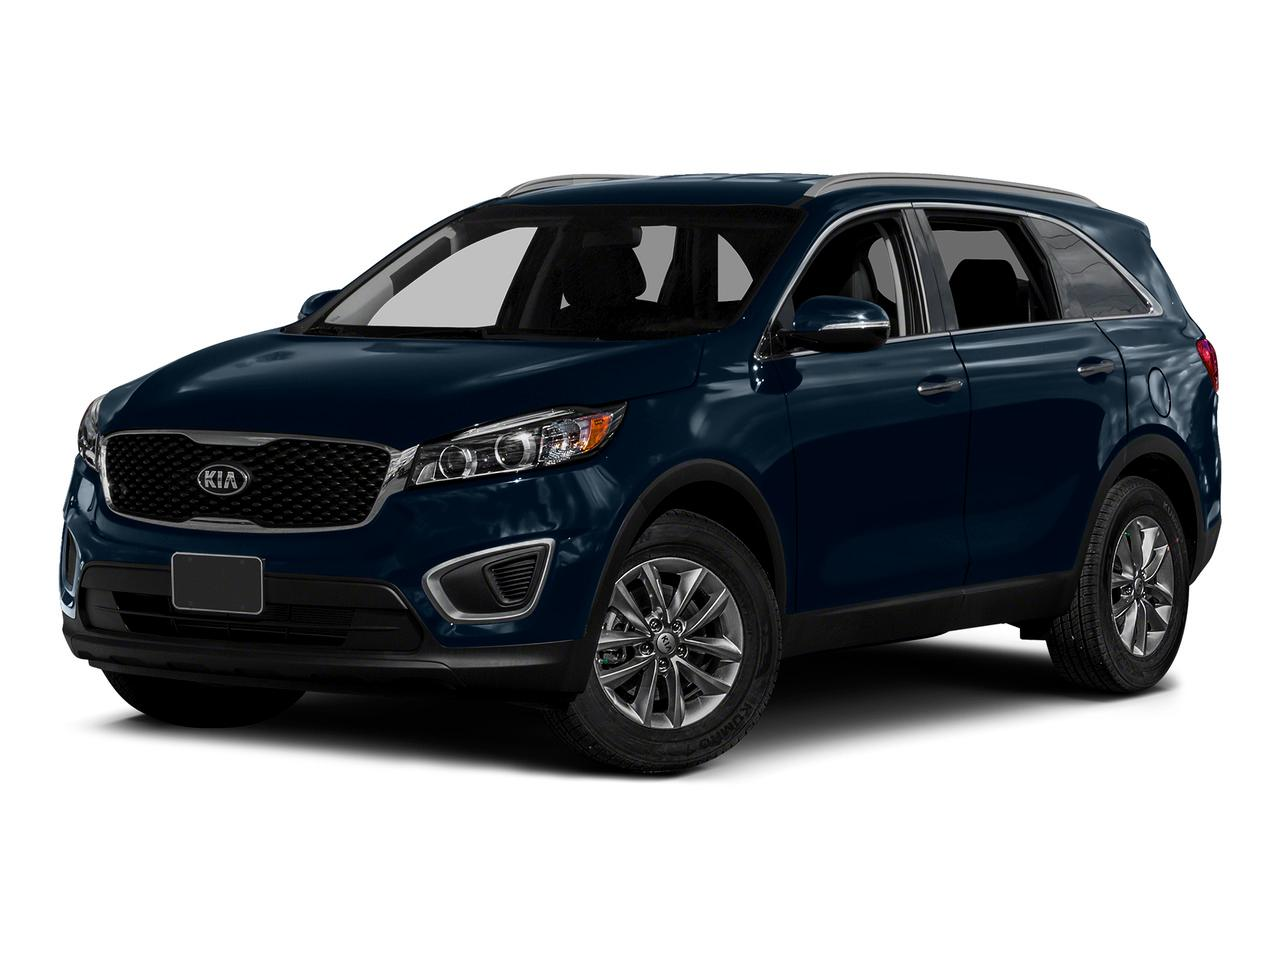 2016 Kia Sorento Vehicle Photo in Concord, NC 28027